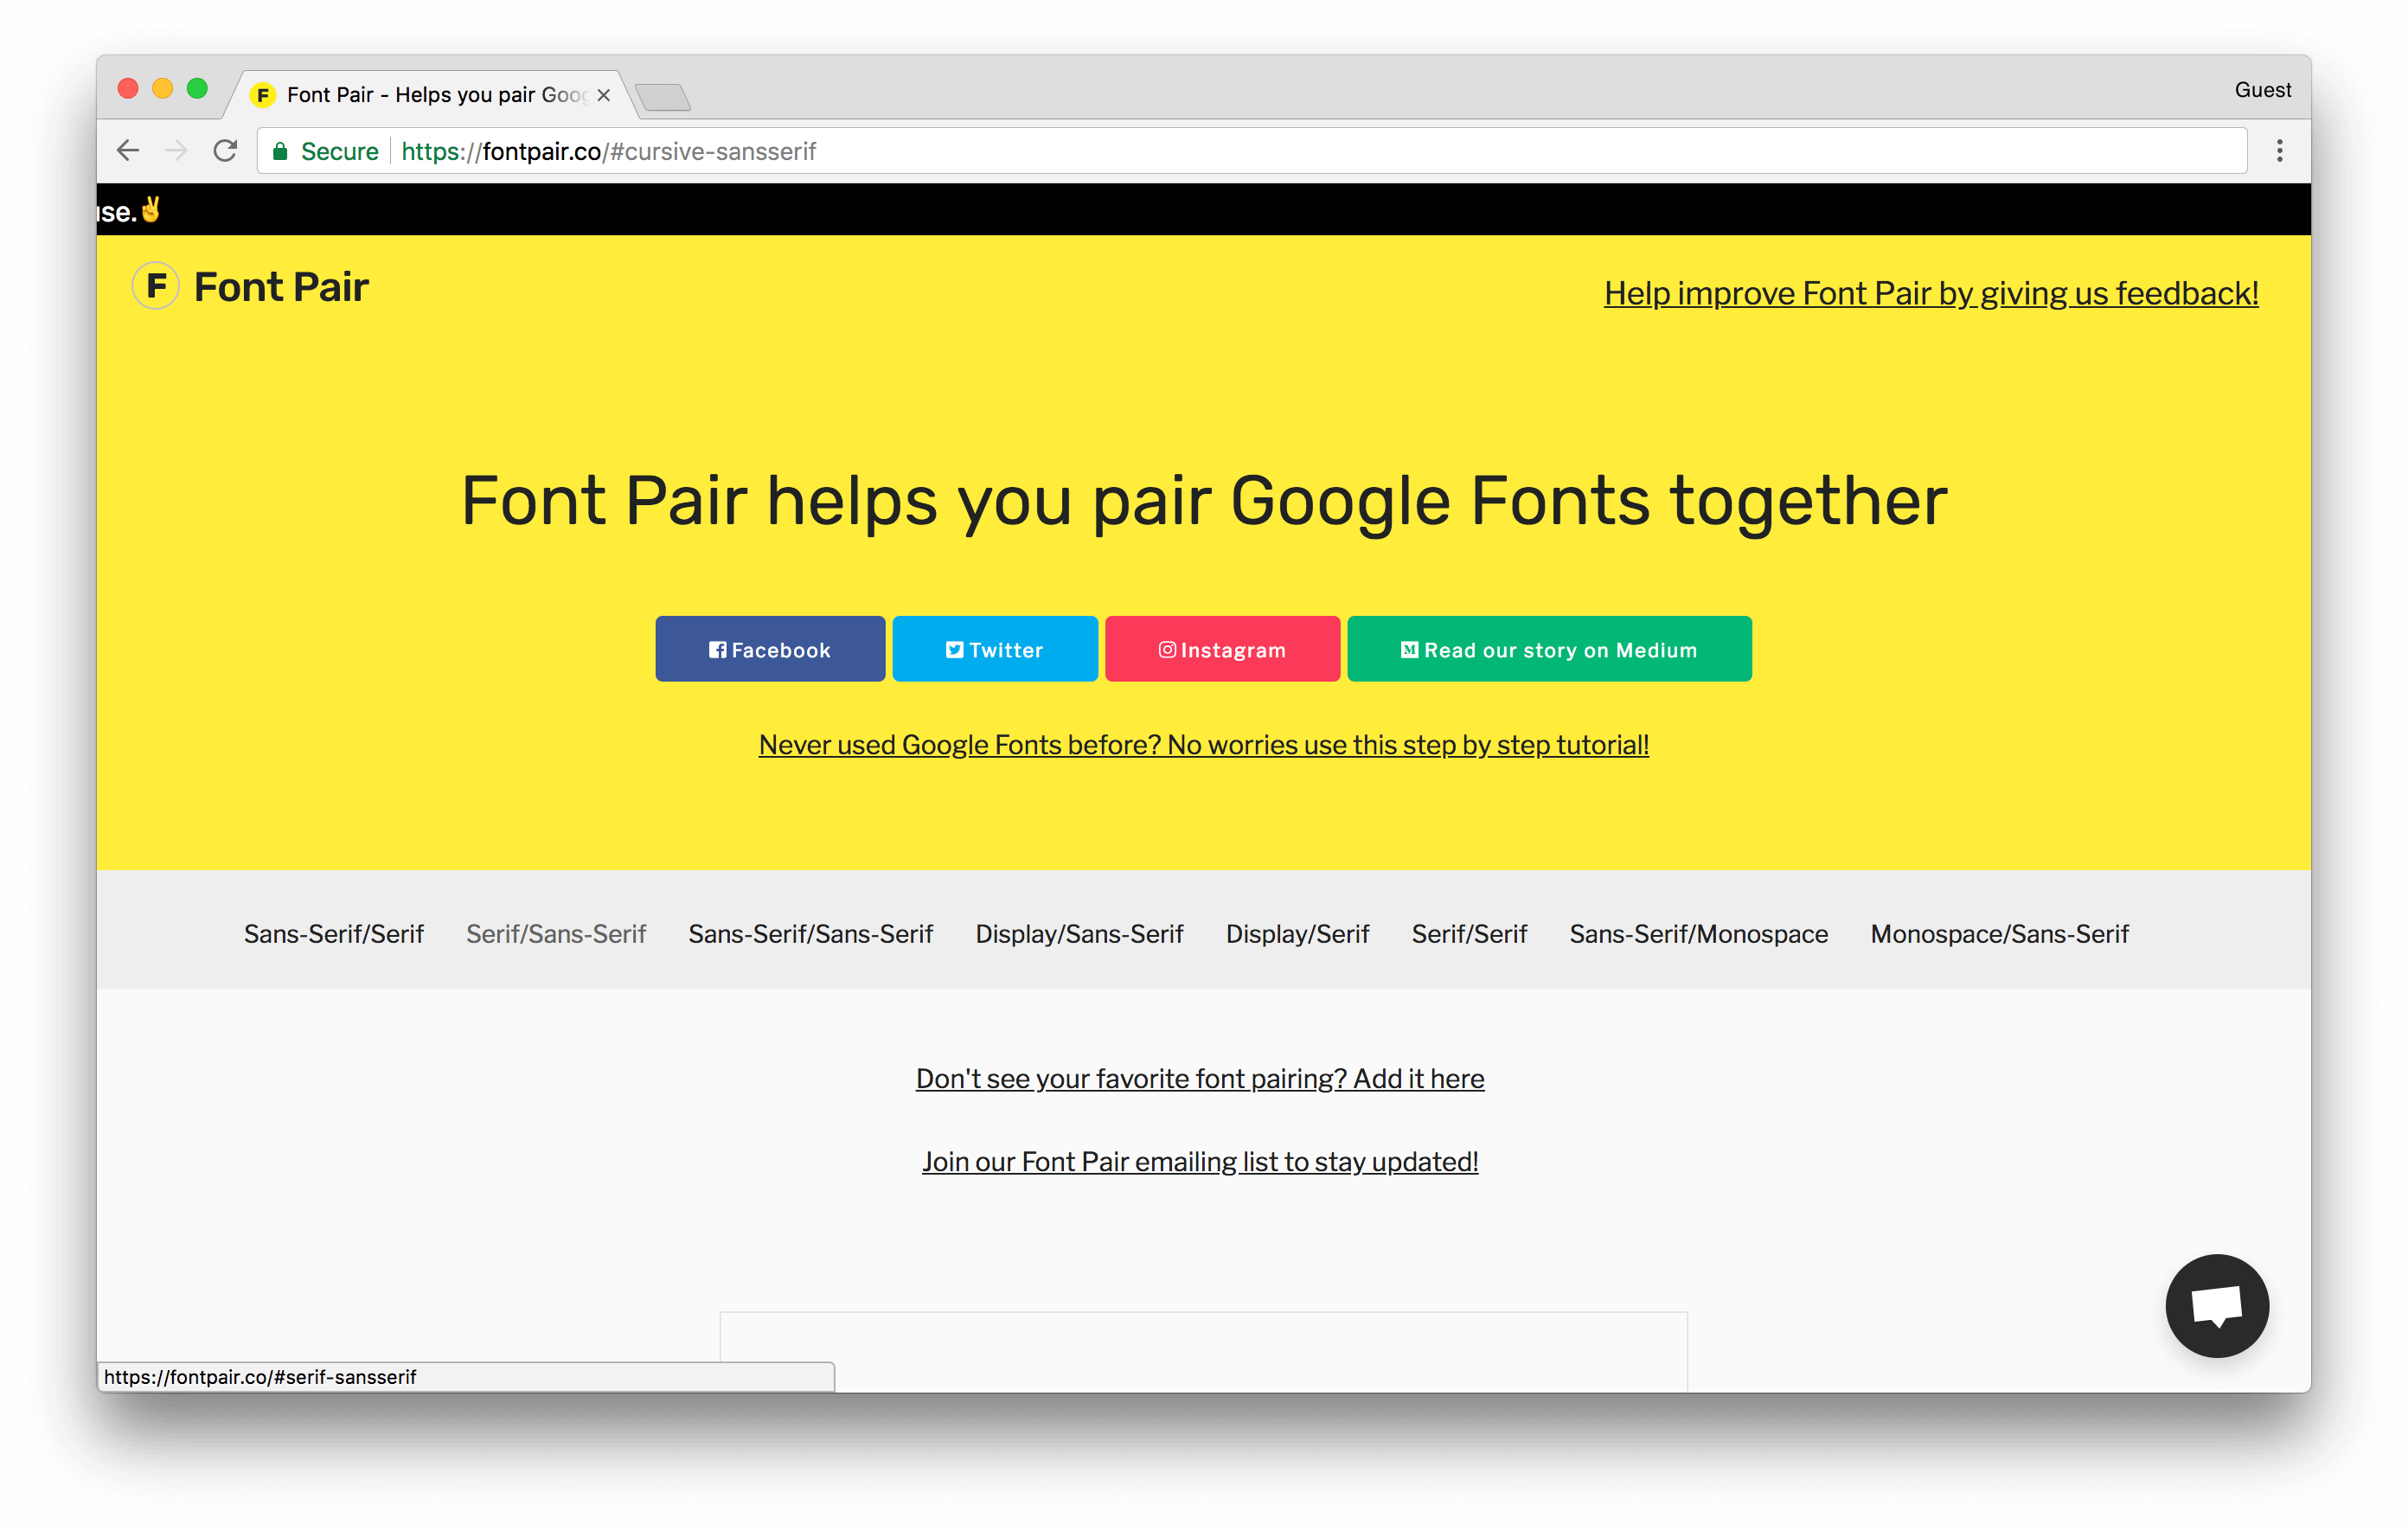 fontpair.co